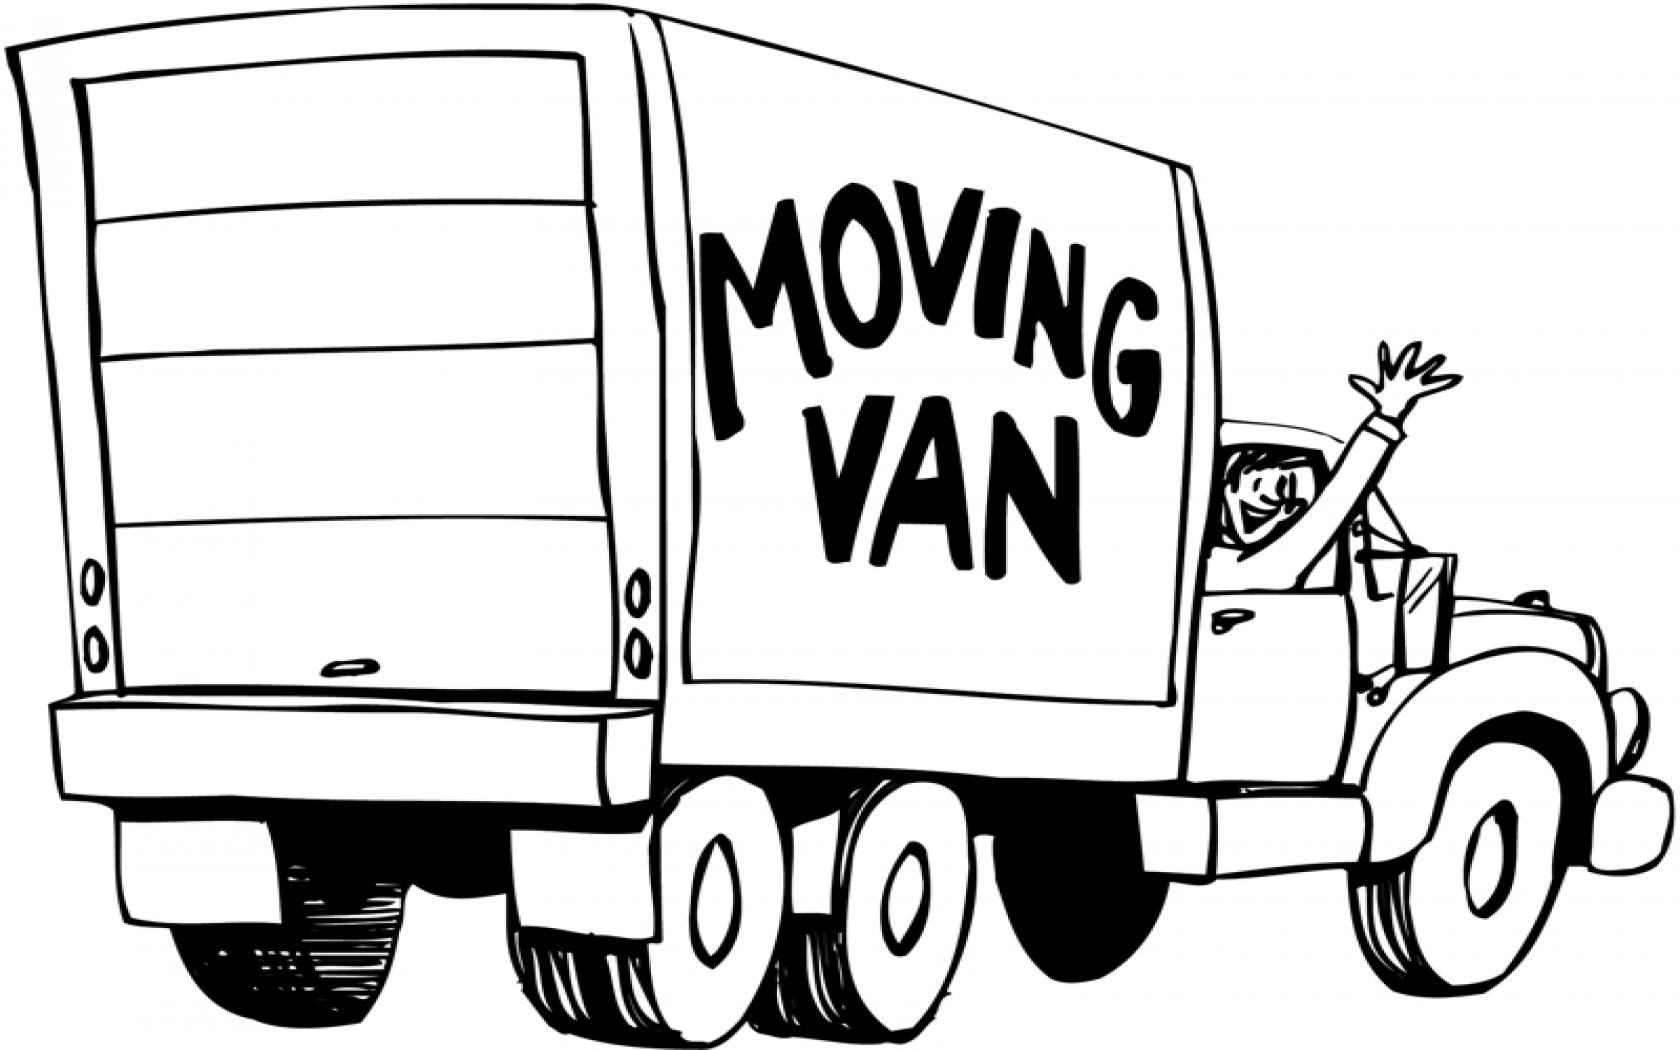 free clip art office move - photo #44